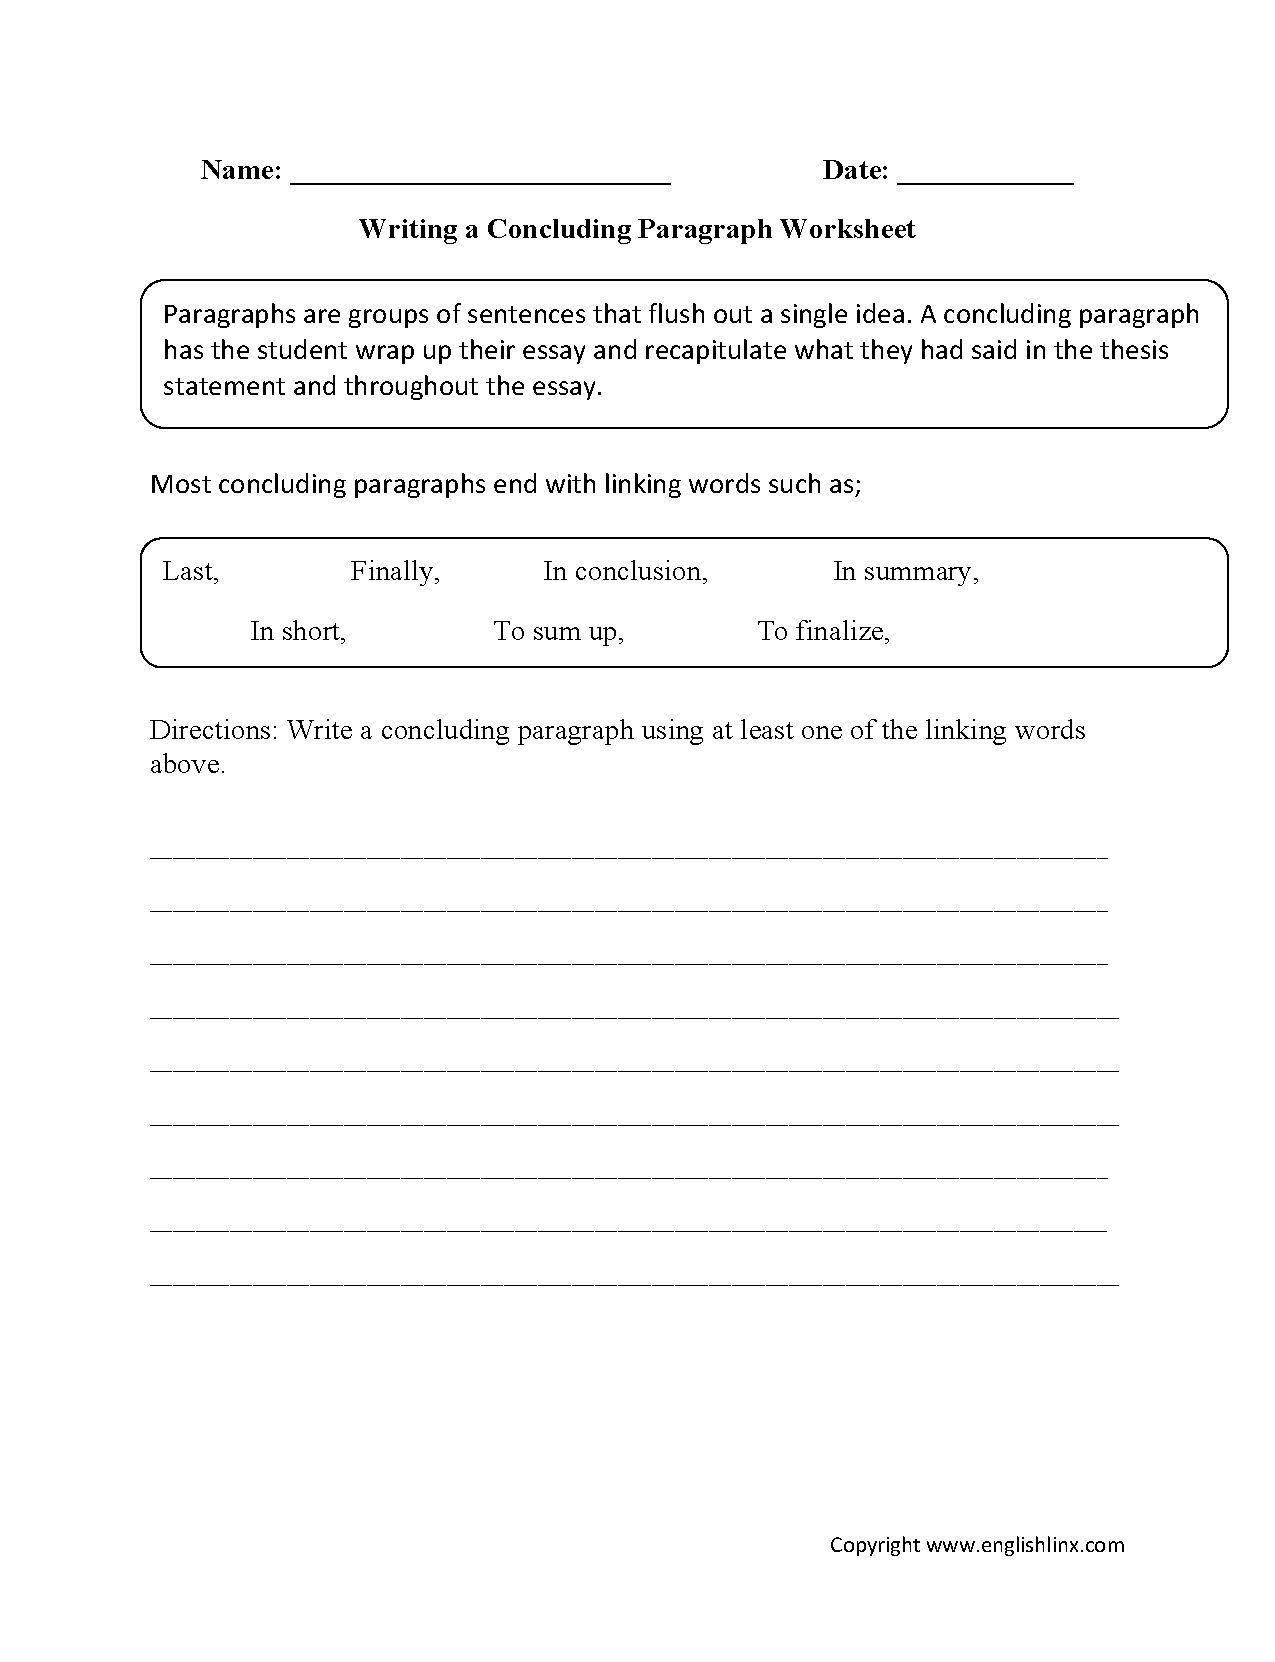 4 Writing Worksheets For Adults Writing Concluding